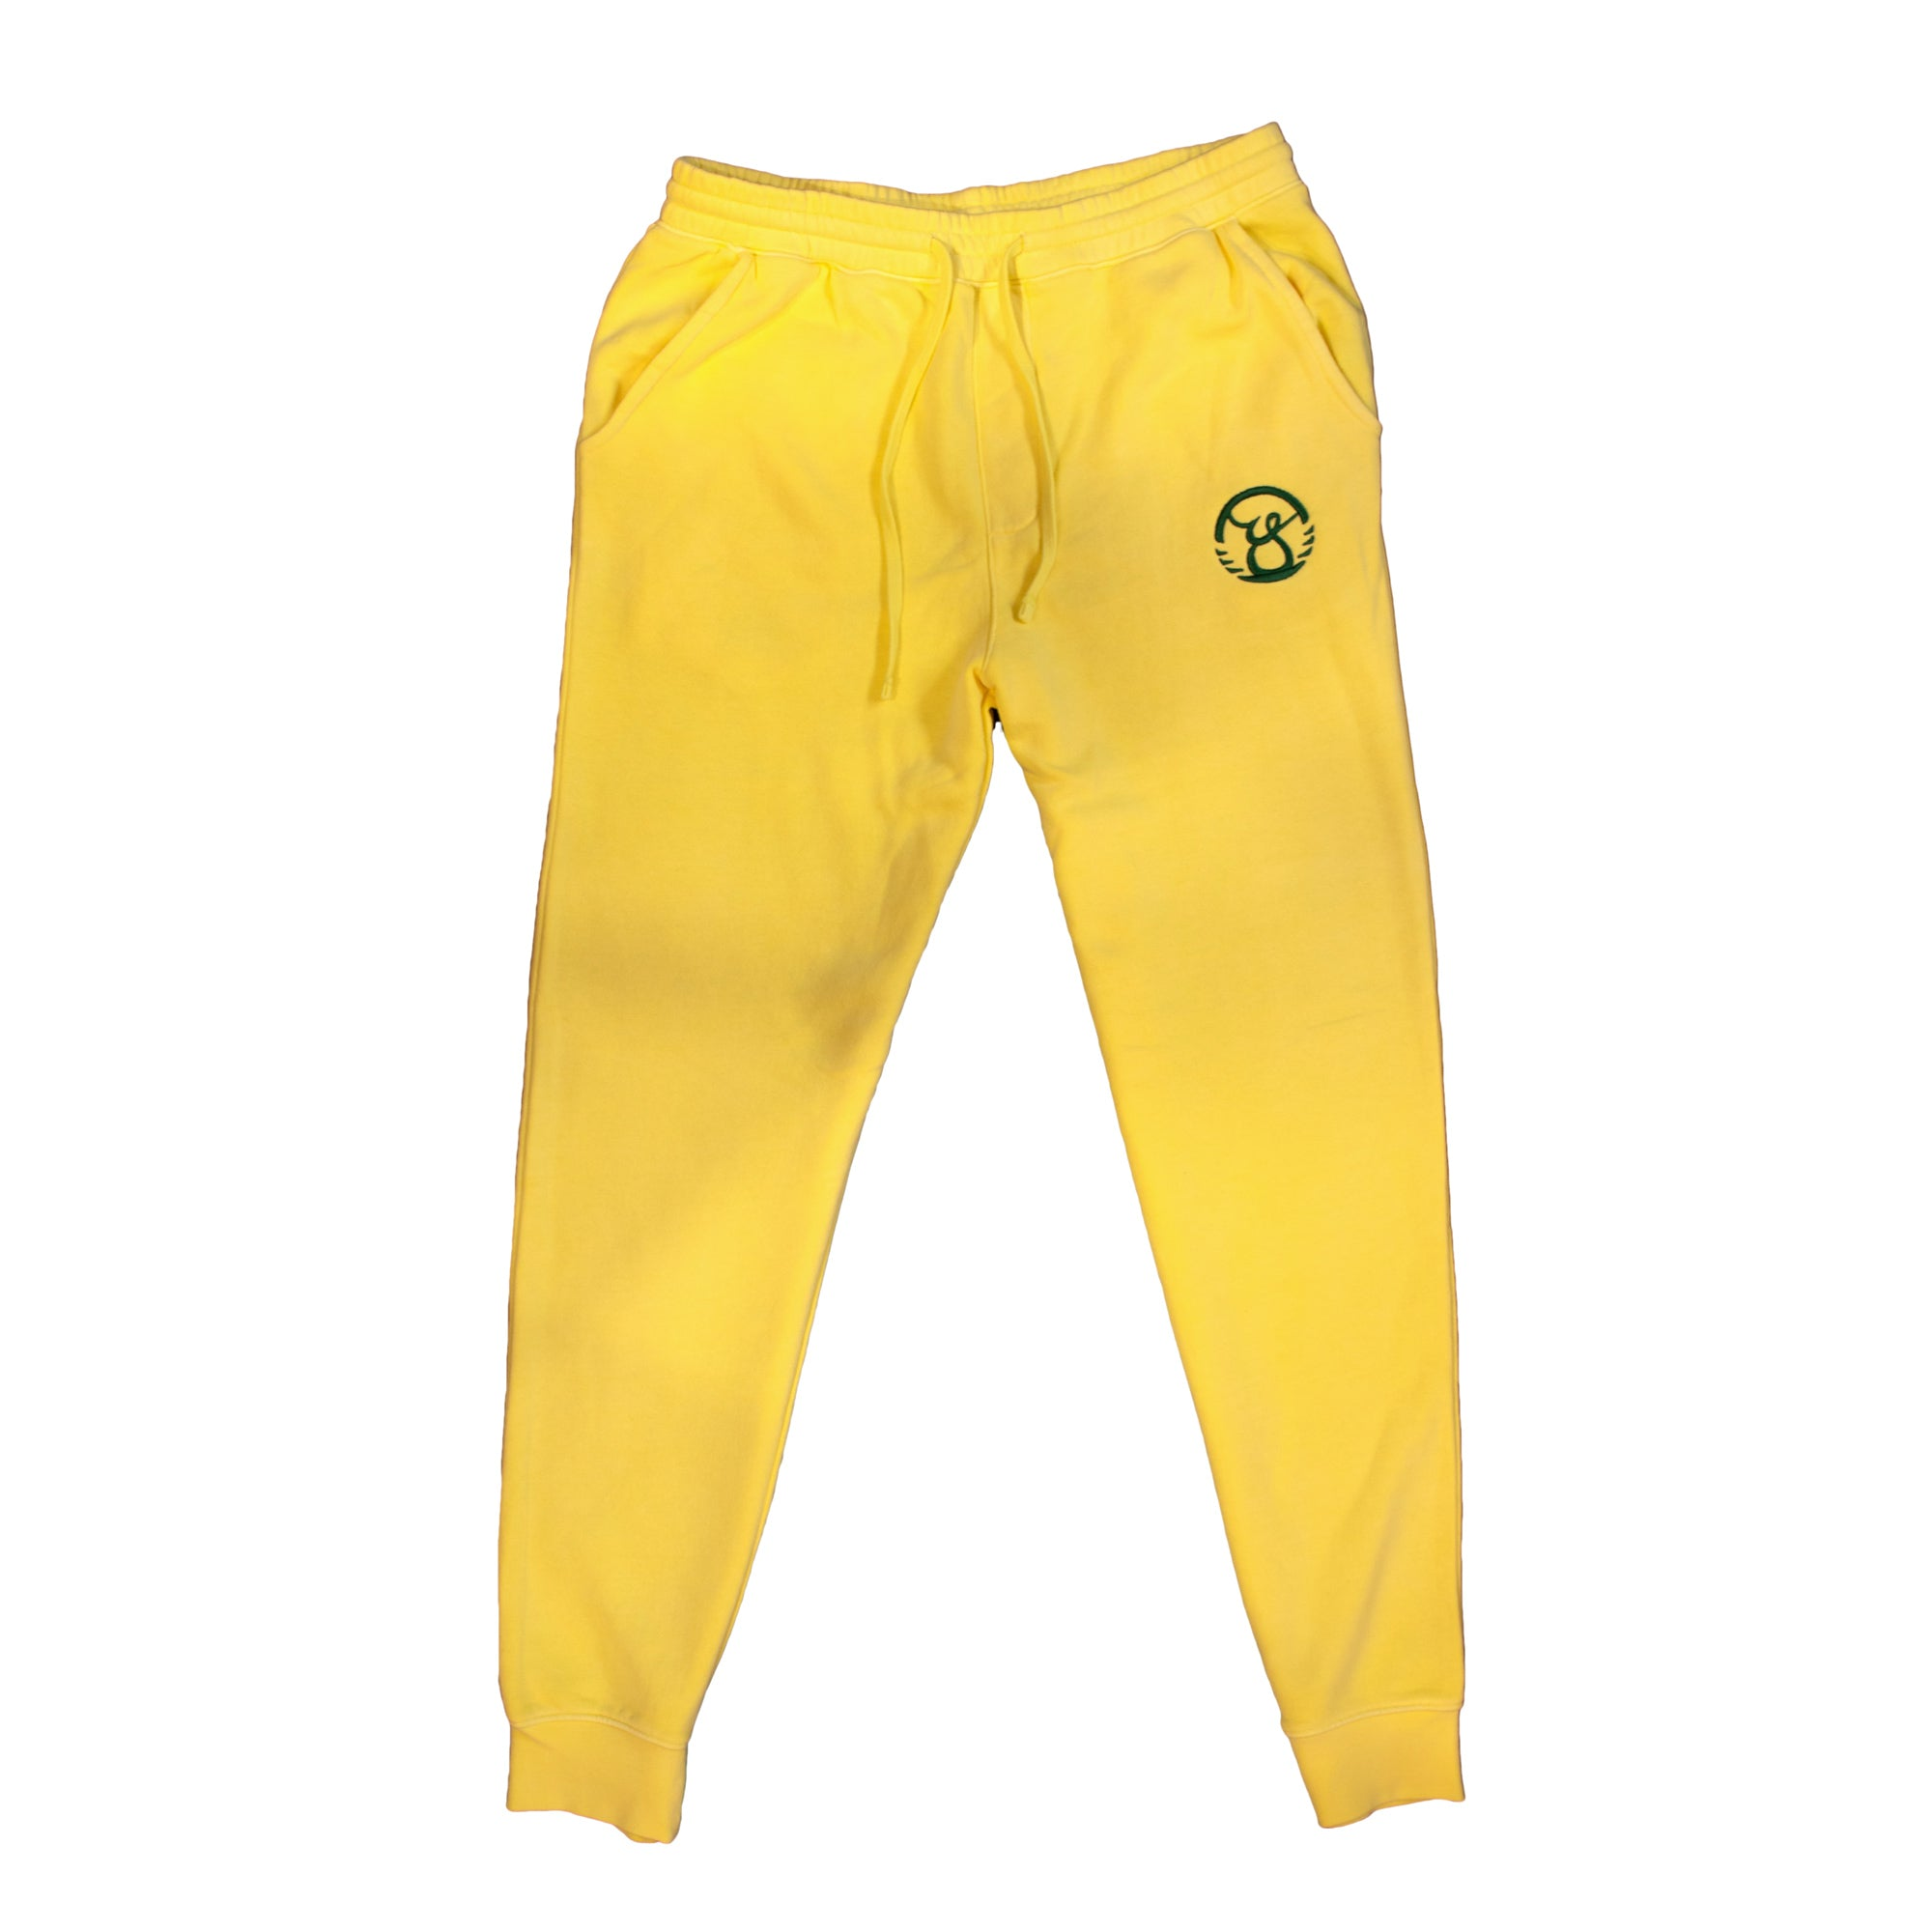 Official Crew Yellow Jogger Set.